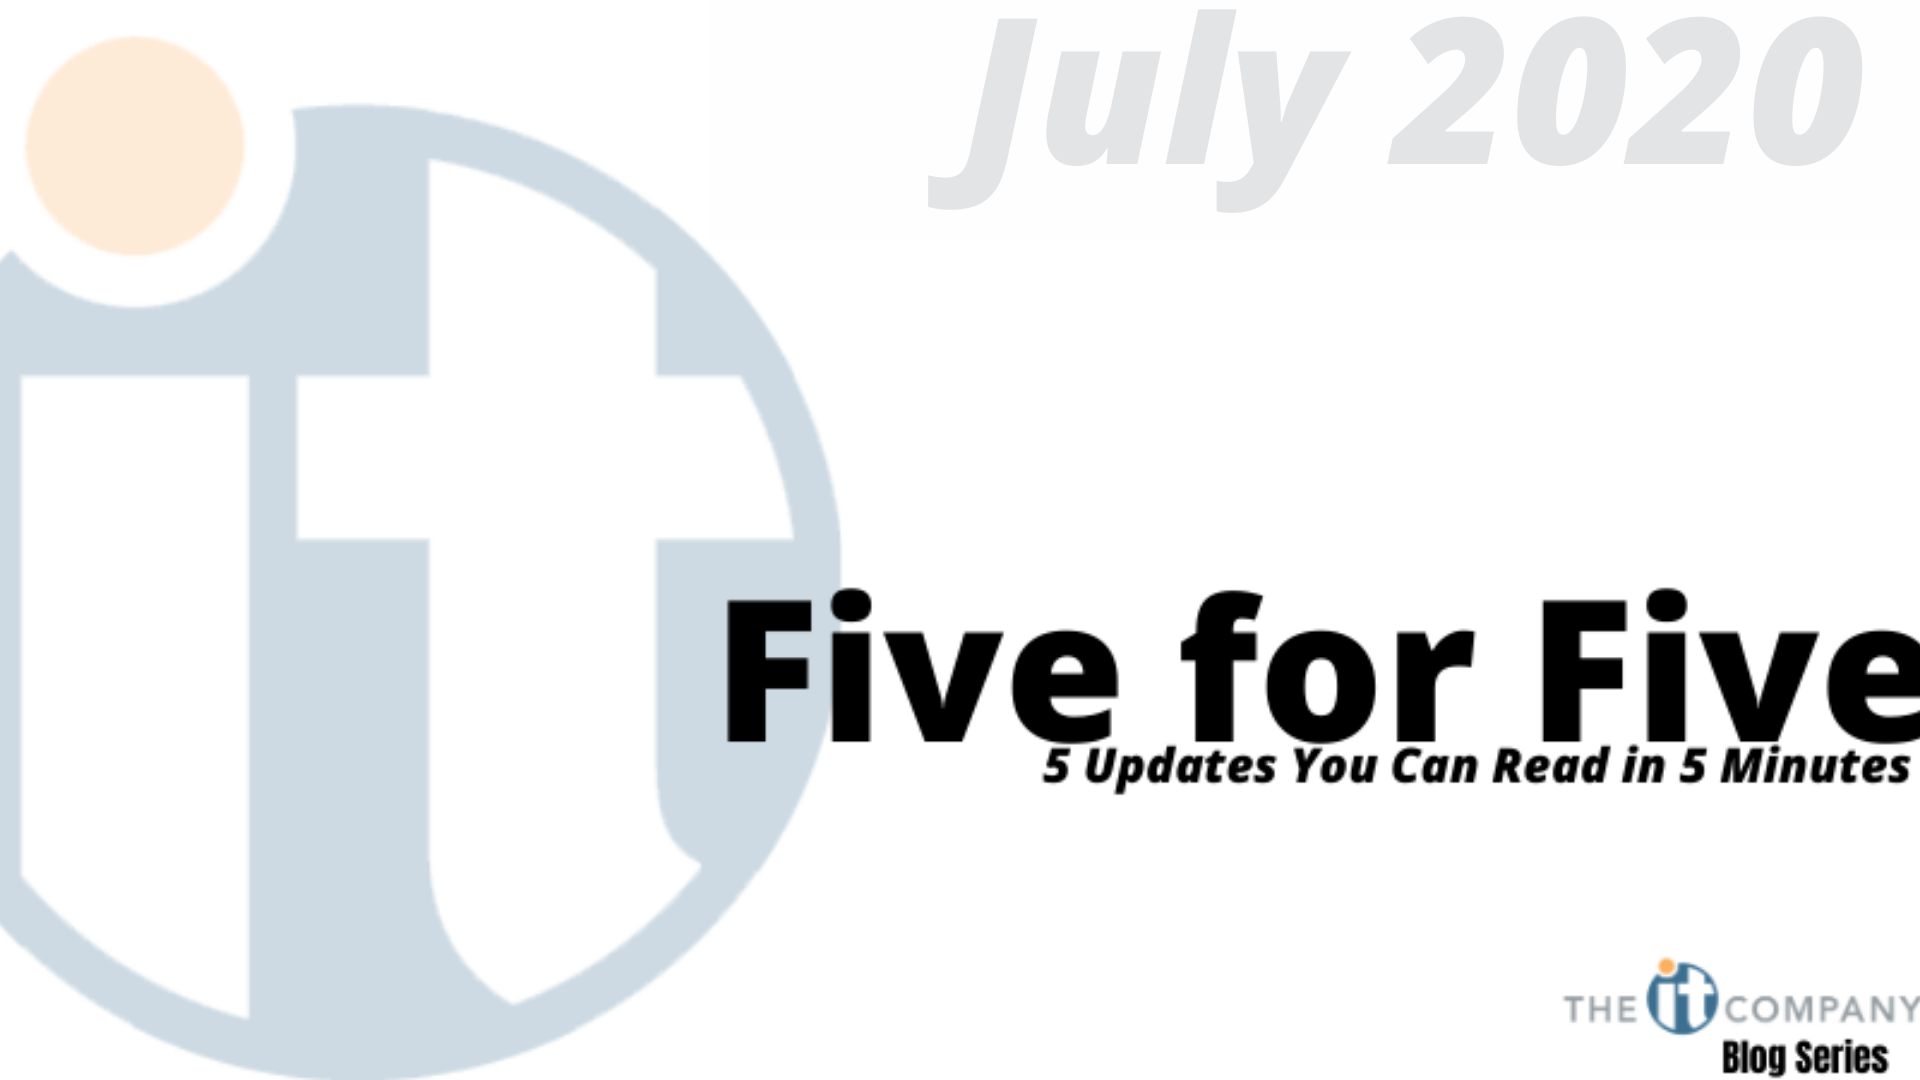 Five for Five- 5 Updates You Can Read in 5 Minutes